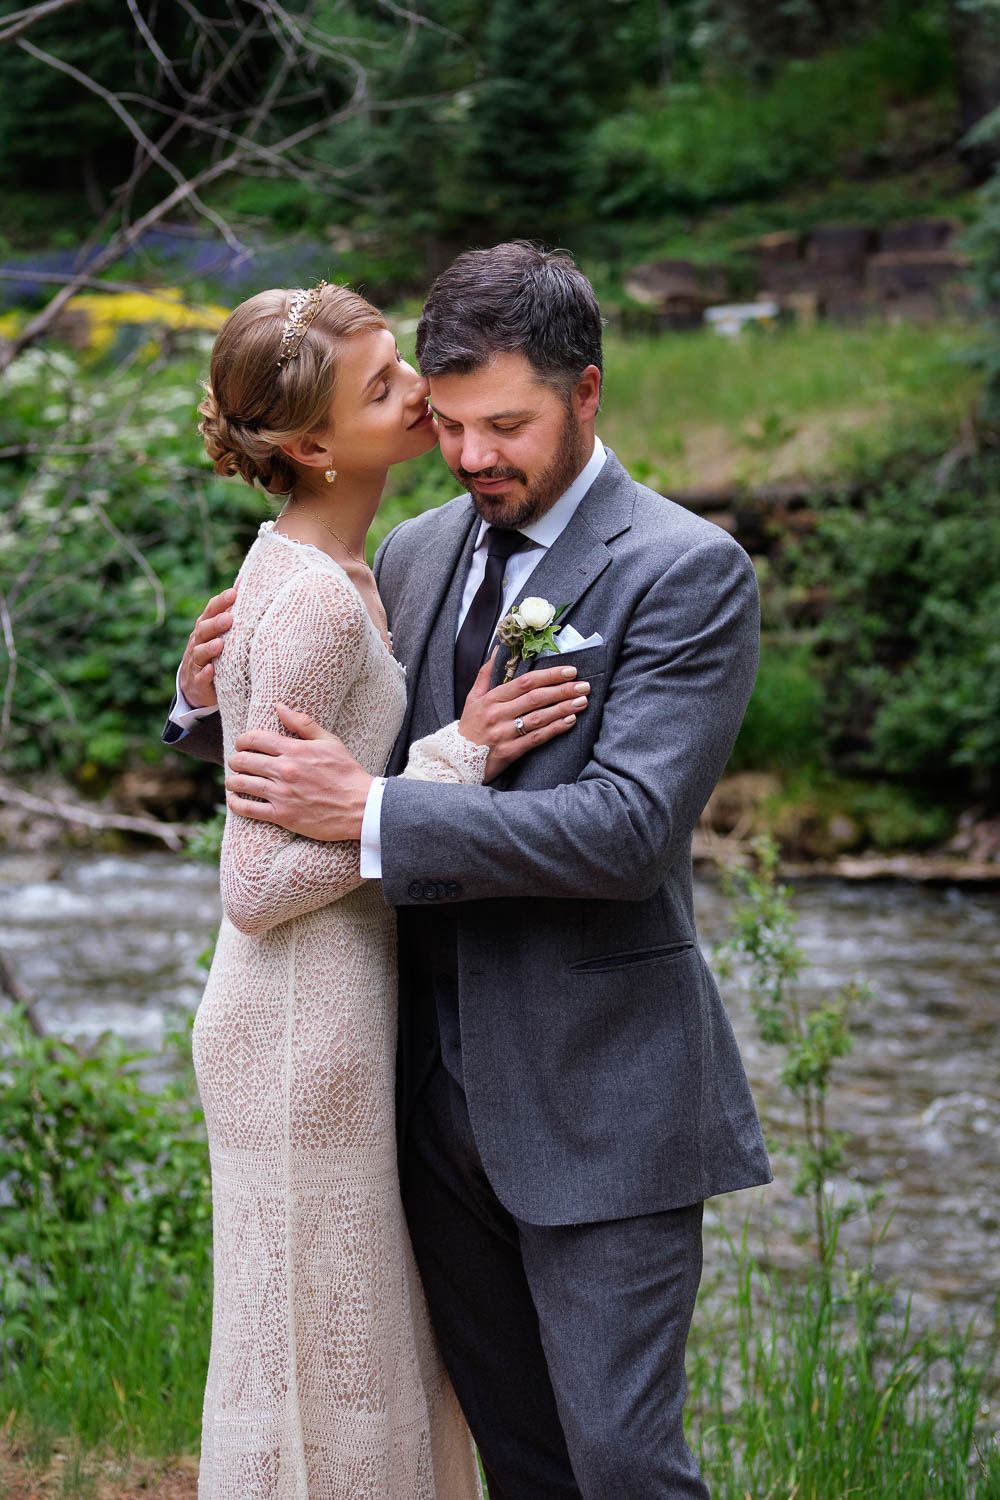 Fashion model Anna Selezneva's wedding in Vail Colorado.  Wedding ceremony at the Vail Chapel.  Wedding reception at The 10th on Vail Ski Resort.